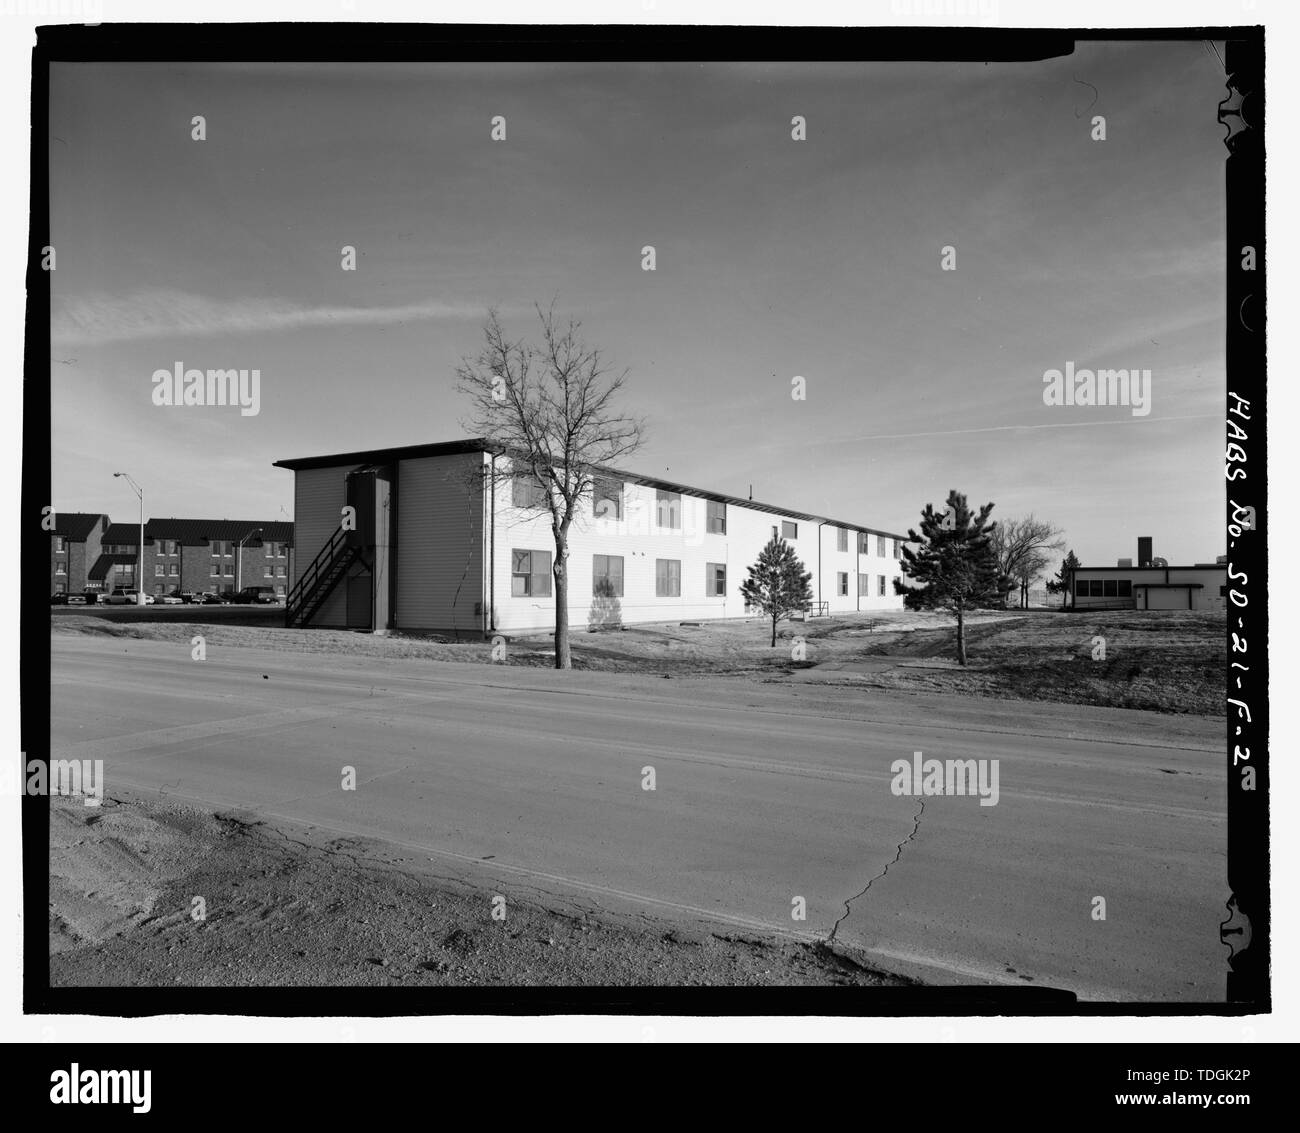 Northwest corner, view to southeast. - Ellsworth Air Force Base, Airmen's Dormitory, 1339 Ellsworth Street, Blackhawk, Meade County, SD; Black and Veatch; Jackson, Christiana, transmitter; Barbalace, Donald S, photographer; Anderson, Kenneth L, historian - Stock Image